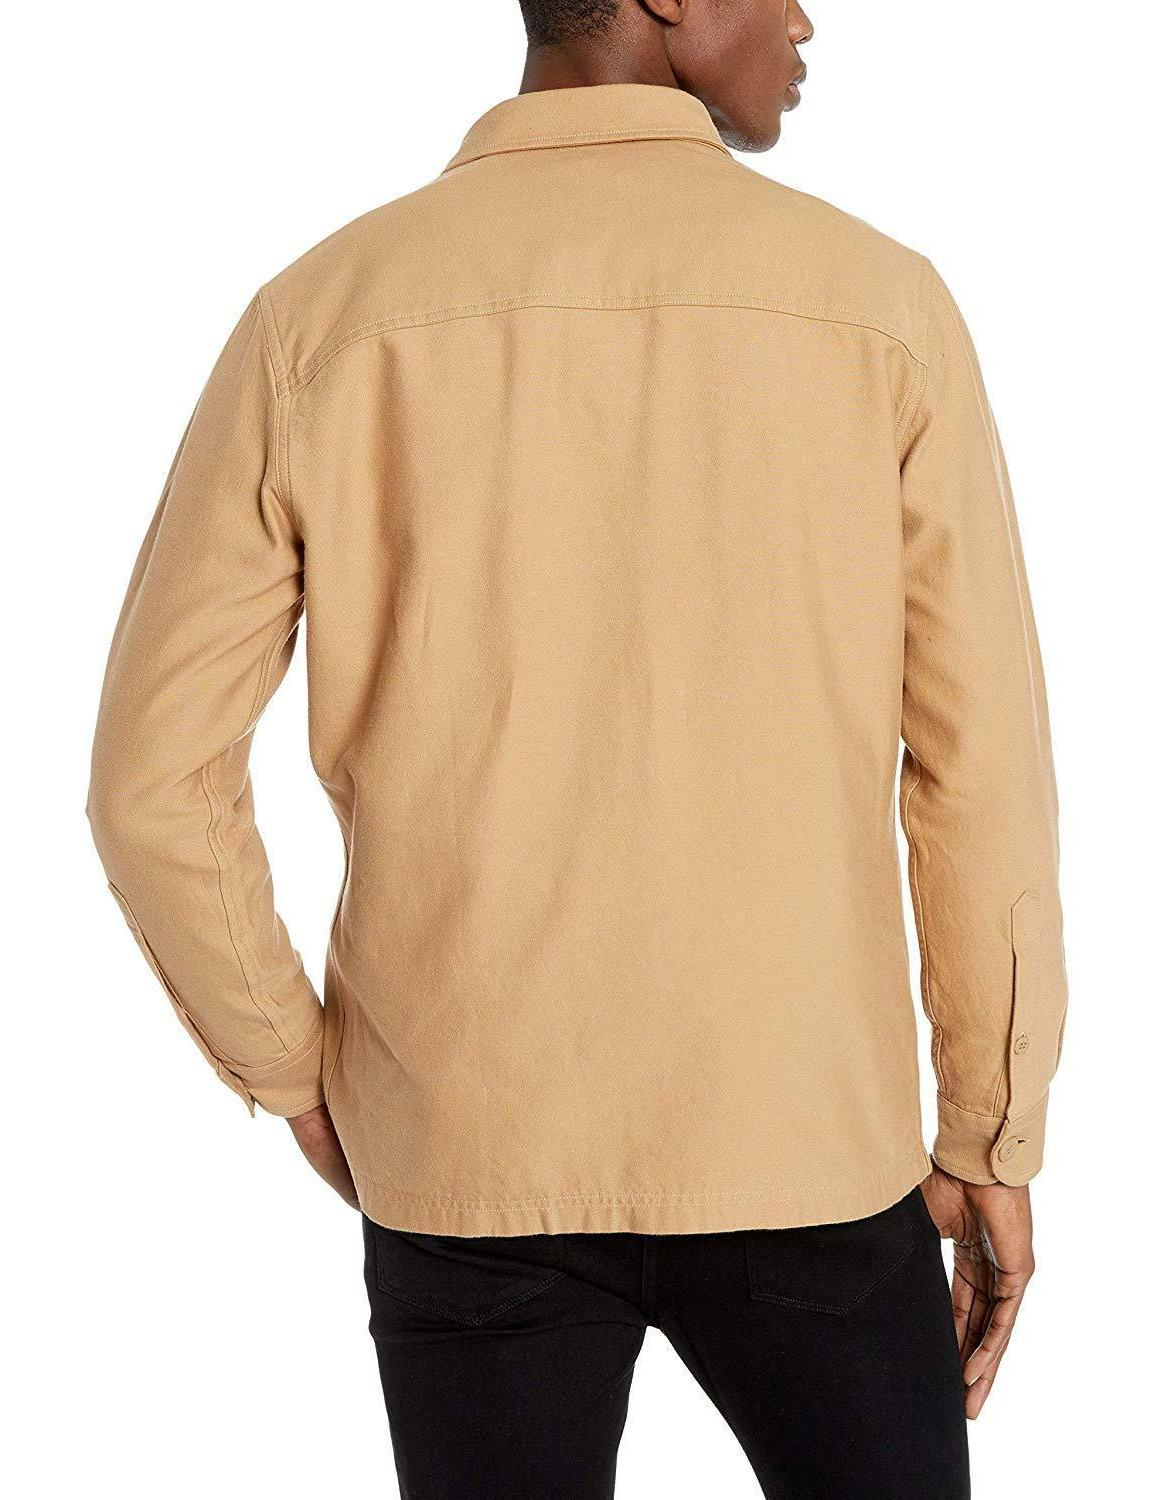 Goodthreads Men's Twill Shirt Jacket